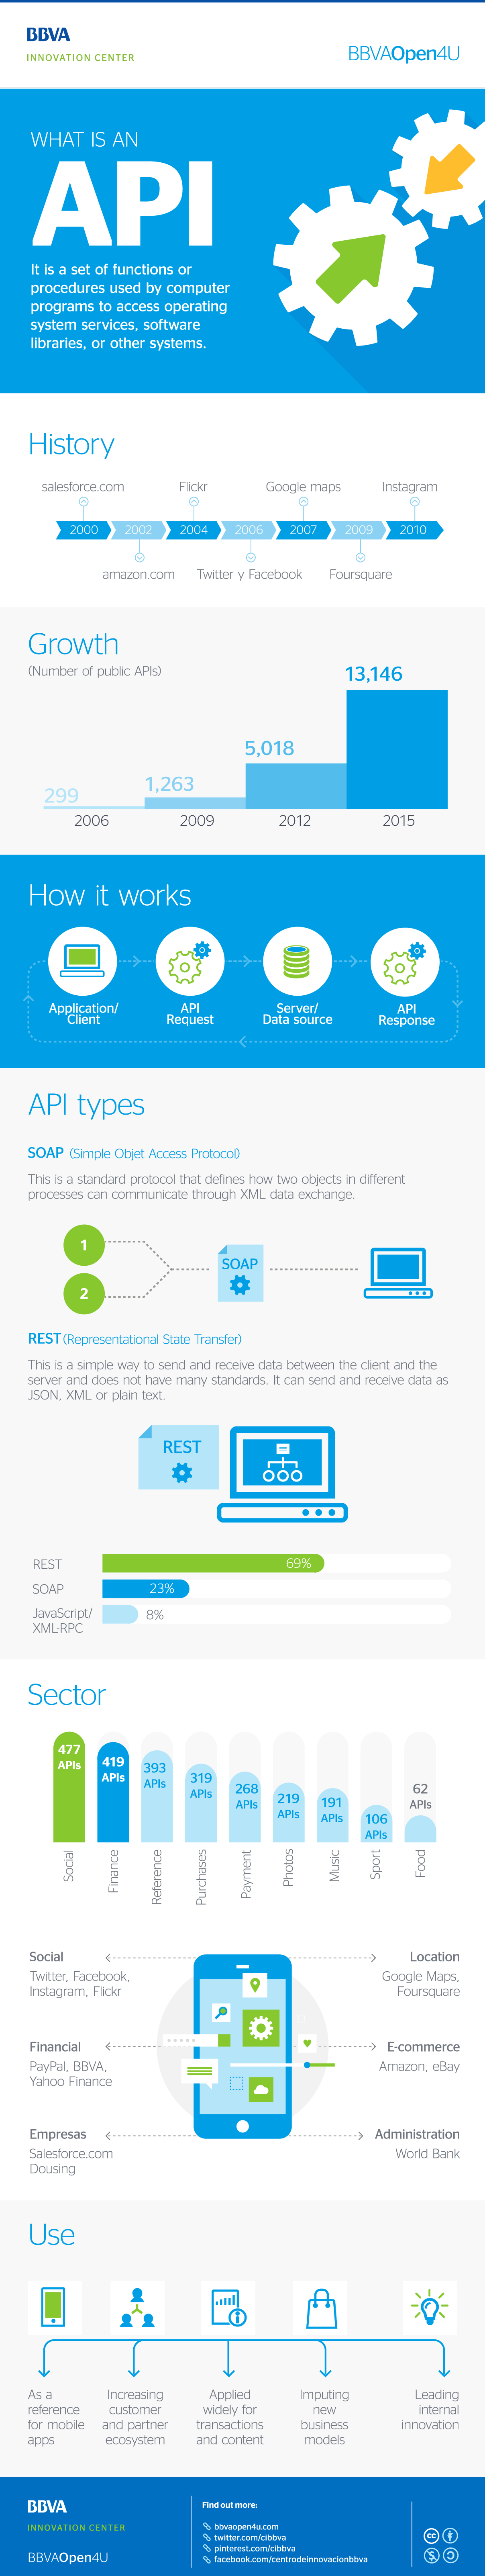 Infographic: What is an API?